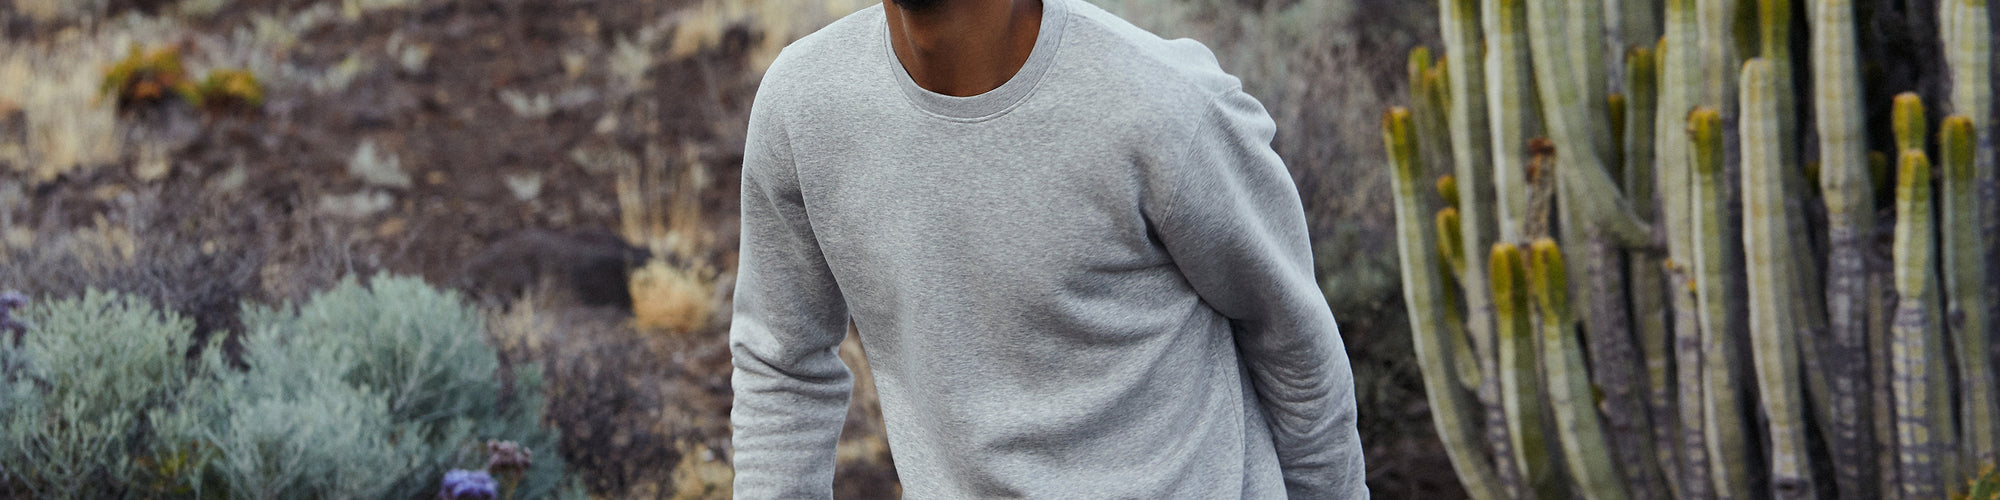 Men's Sweatshirts & Hoodies